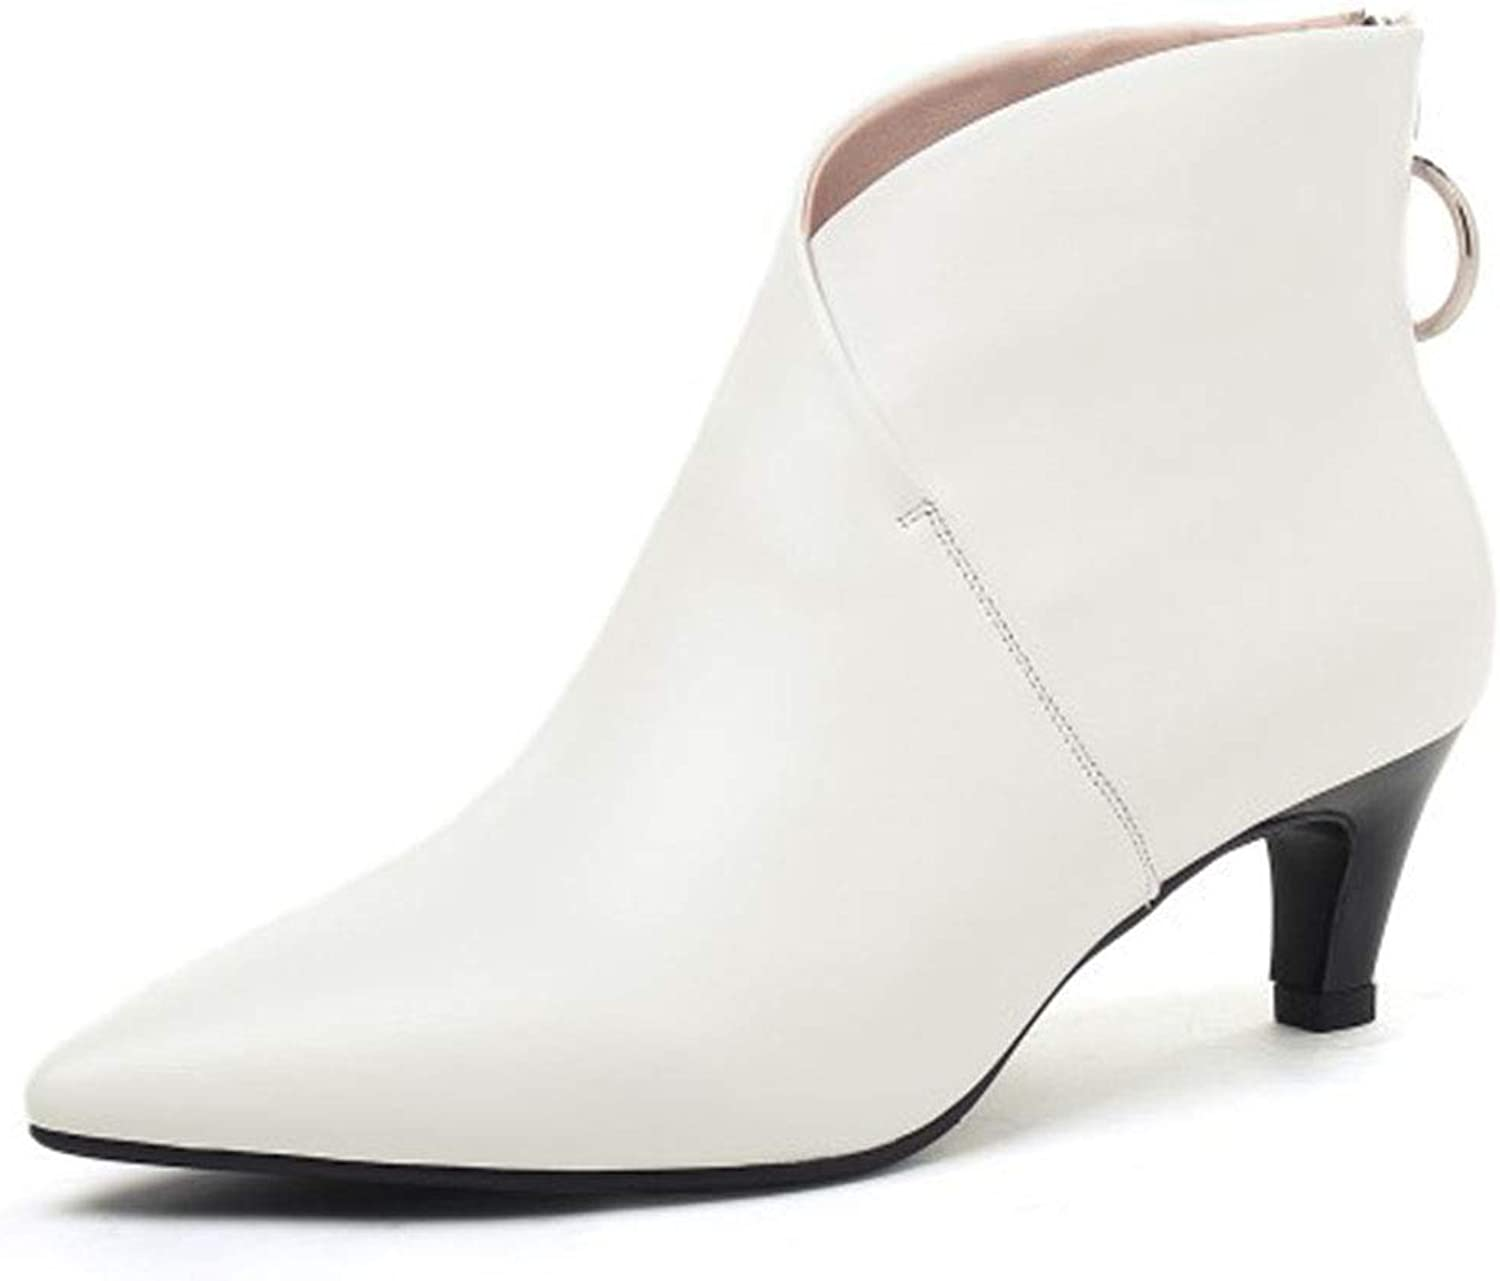 Women's Pointed High Heels Fashion Warm Boots Work shoes Black White